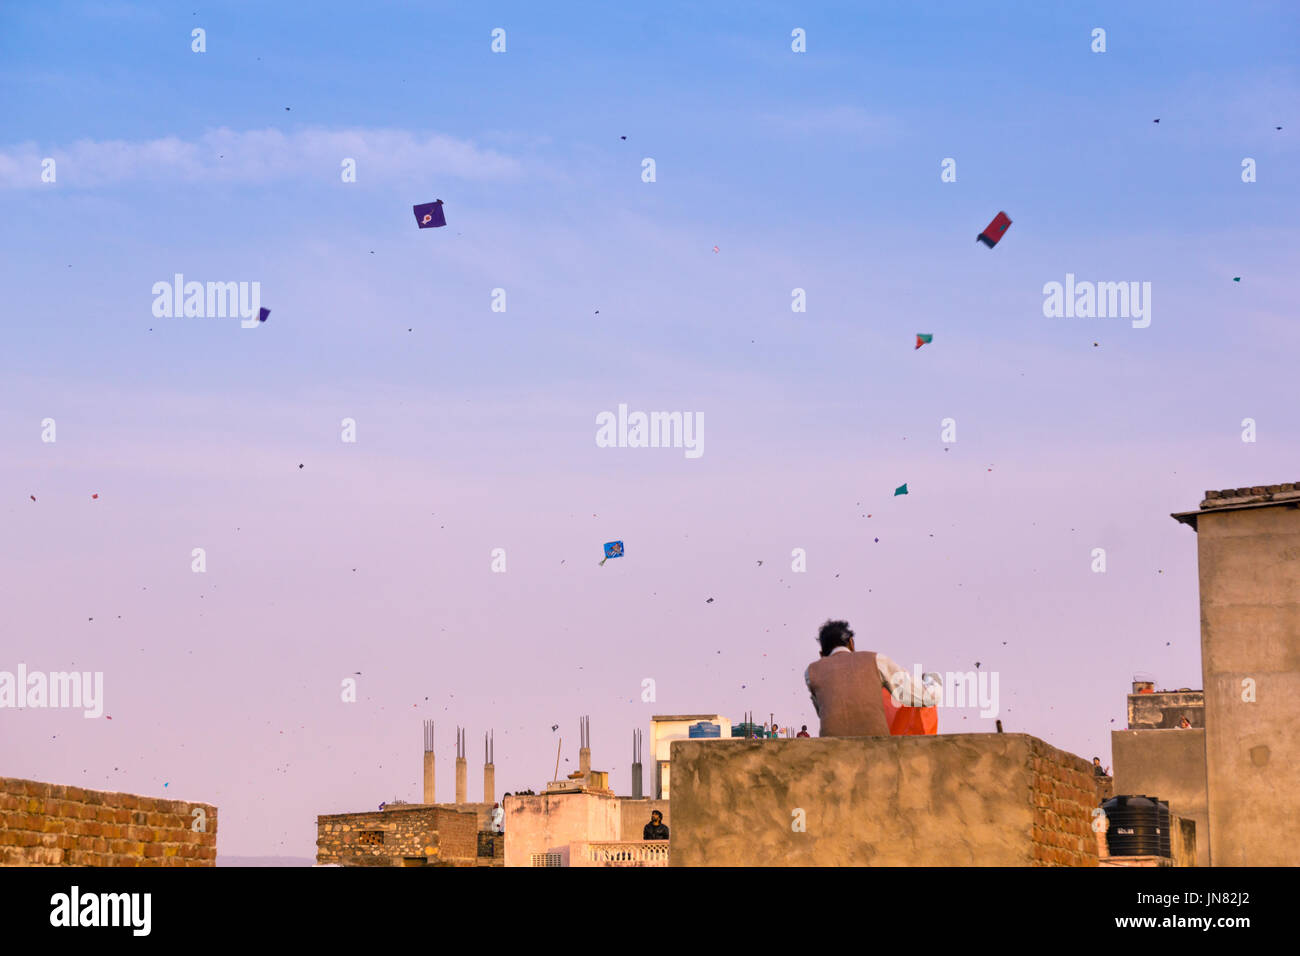 Jaipur, India - 14th Jan 2017 : Families flying kites from the rooftops of their old brick buildings in the old city of Jaipur. This is a popular sport of Makar Sankranti and Independence Day. - Stock Image